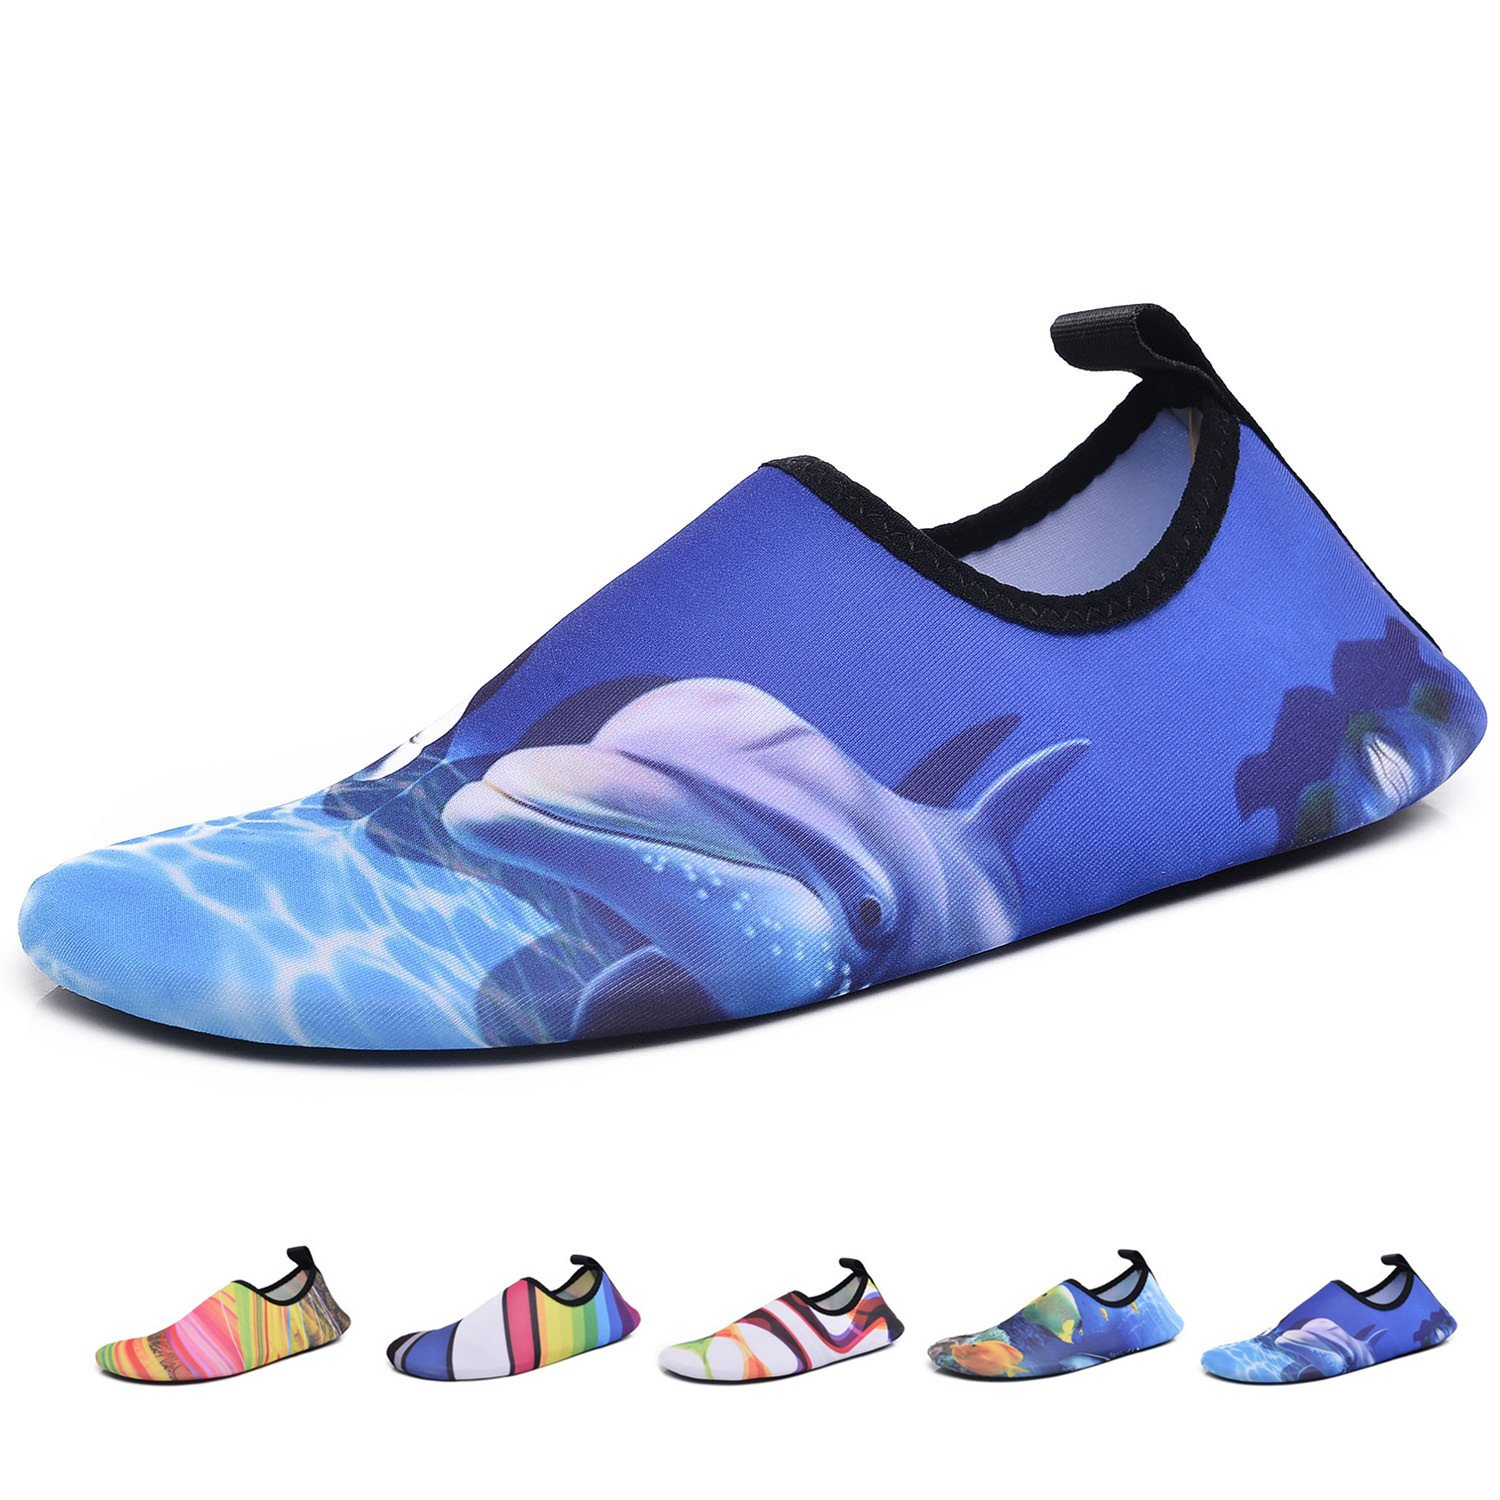 Men Women Kids Water Shoes Summer Quick Dry Barefoot Aqua Socks for Yoga Swim Pool Beach Game Surf Diving Gym Exercise, Dolphin Blue W: 8-9 / M: 7-7.5